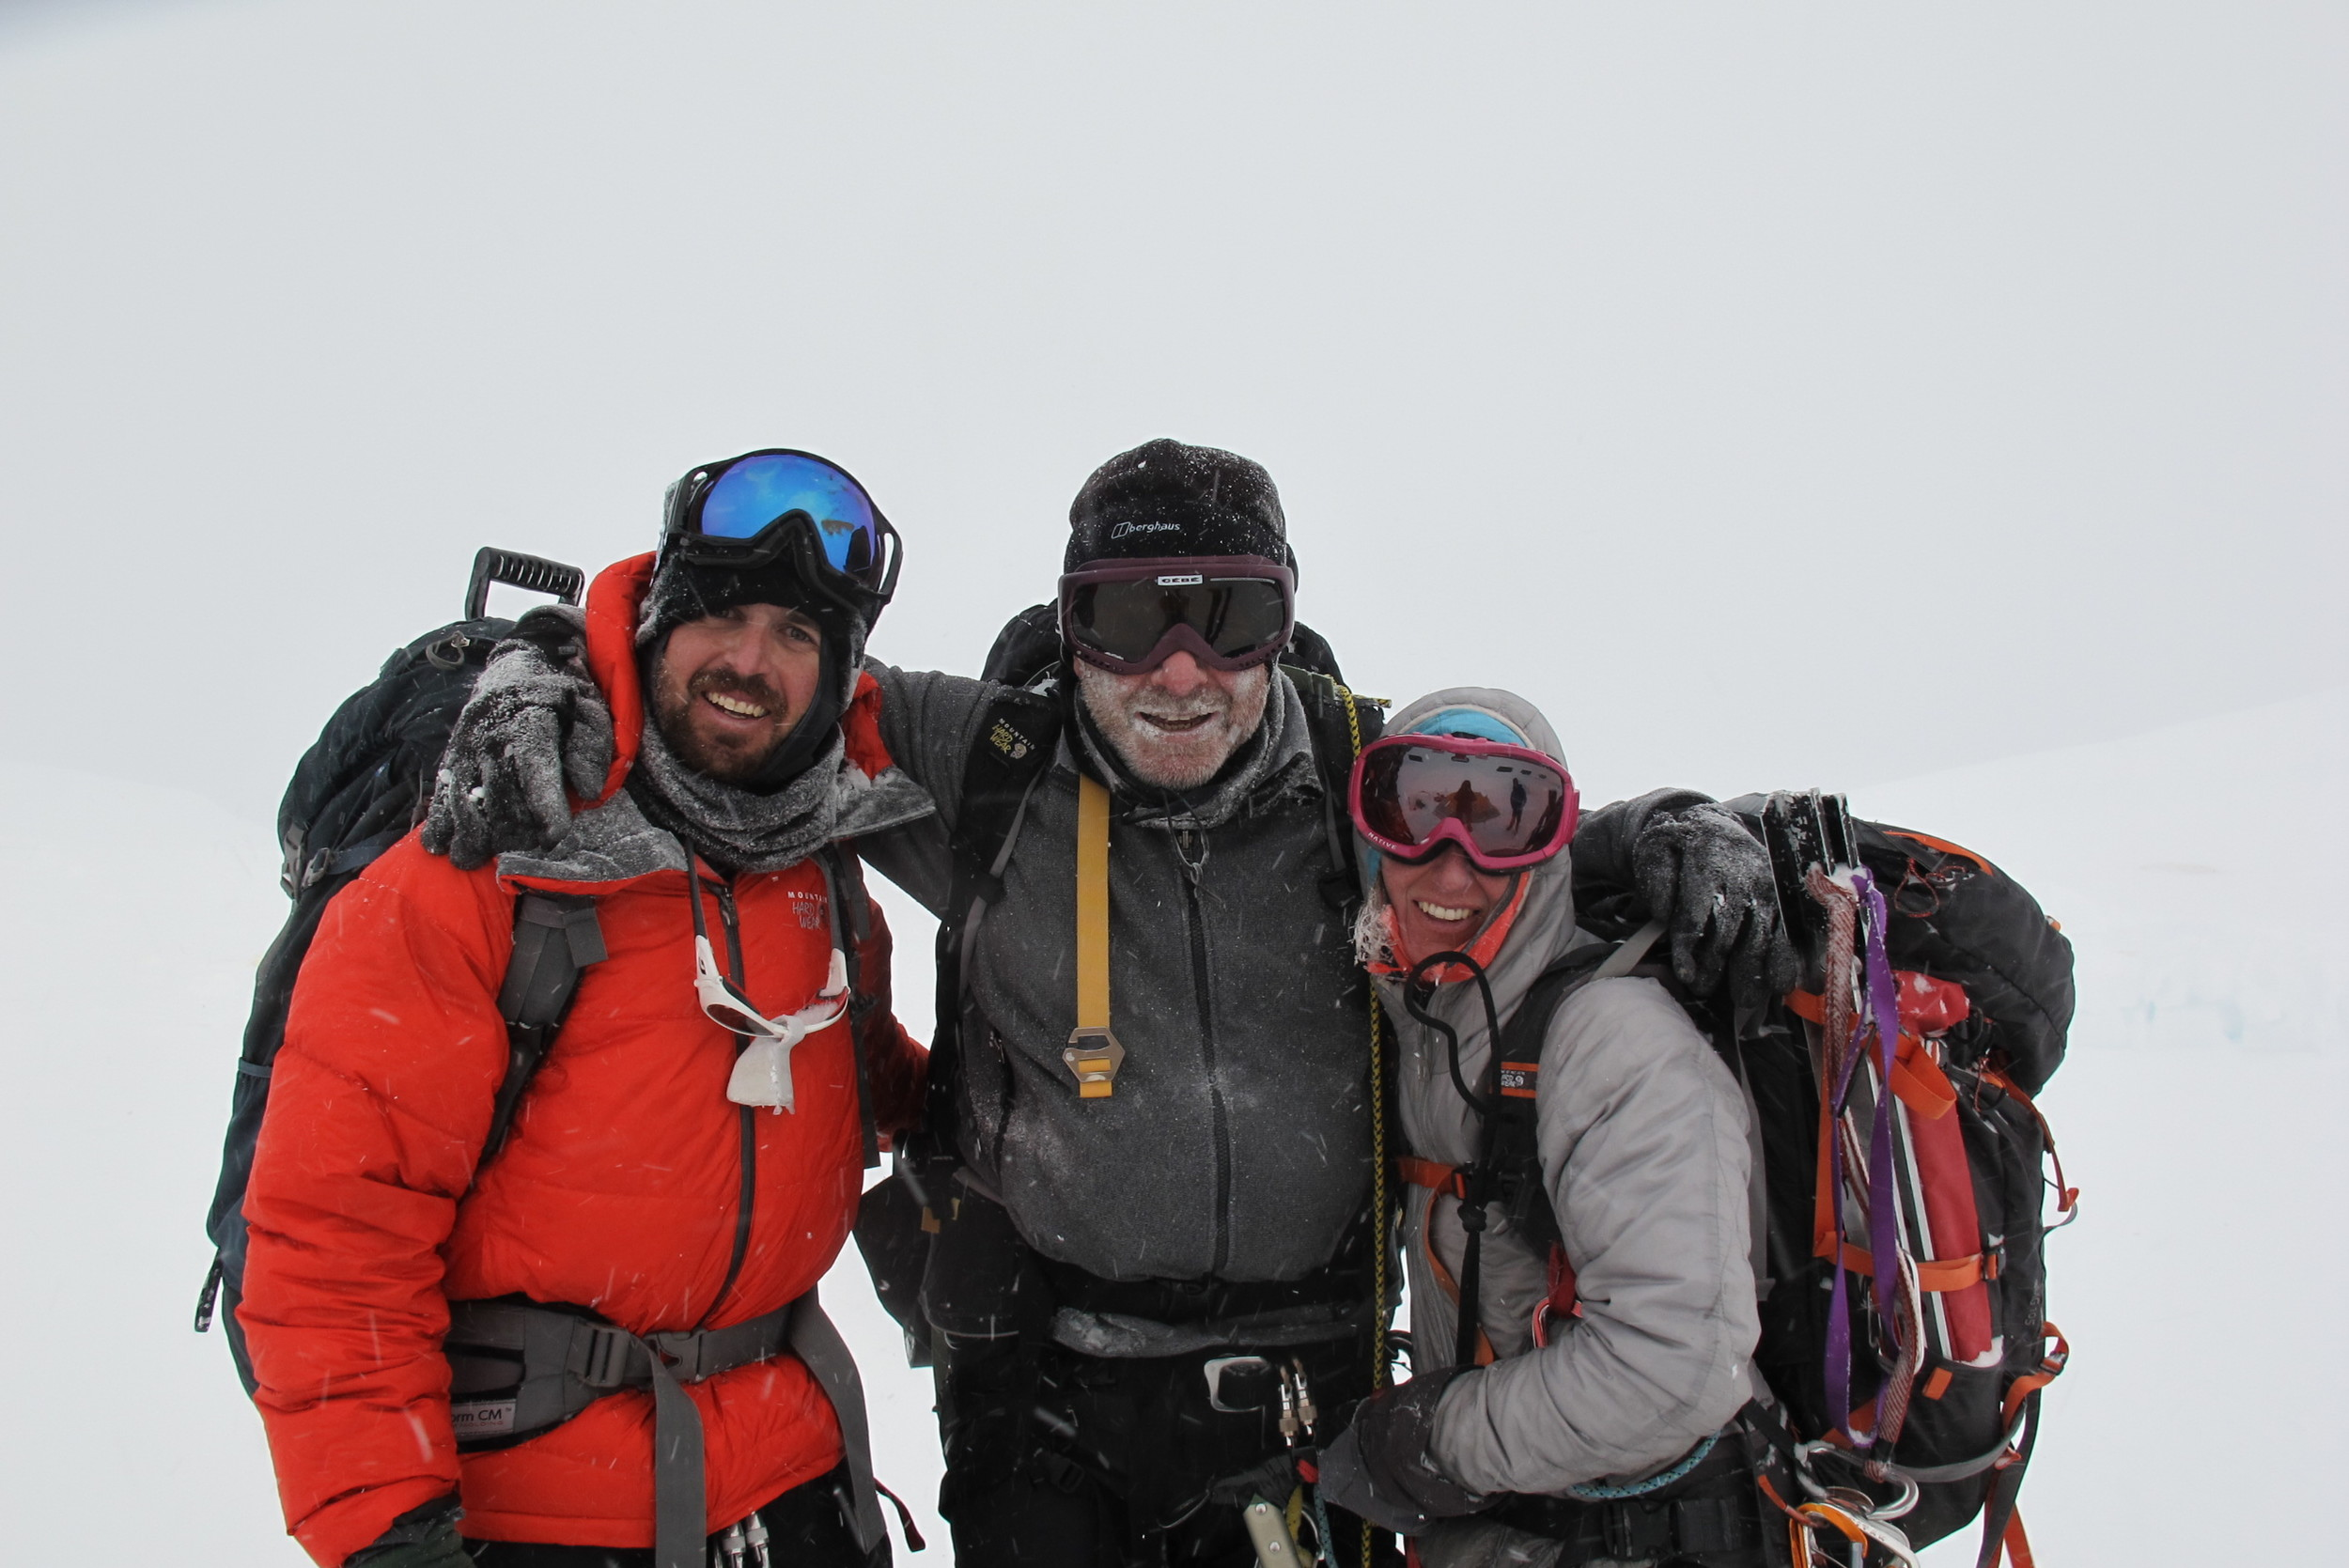 Back to 17 camp after a successful summit!